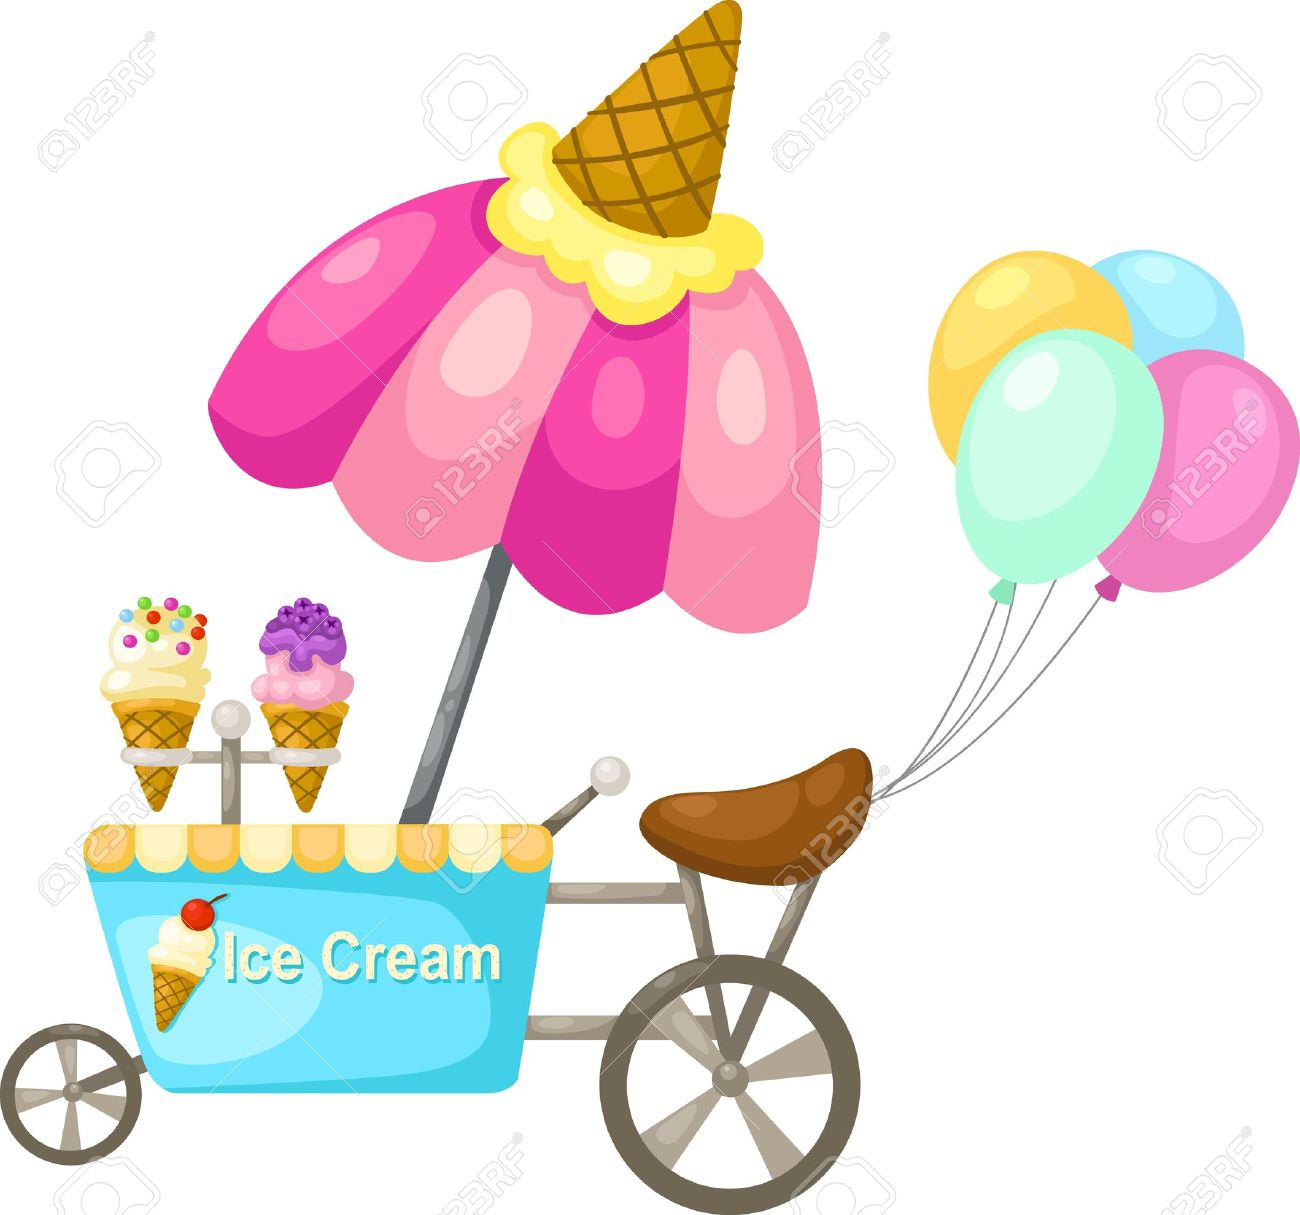 Cute Ice Cream Wallpaper: Free Download Best Cute Ice